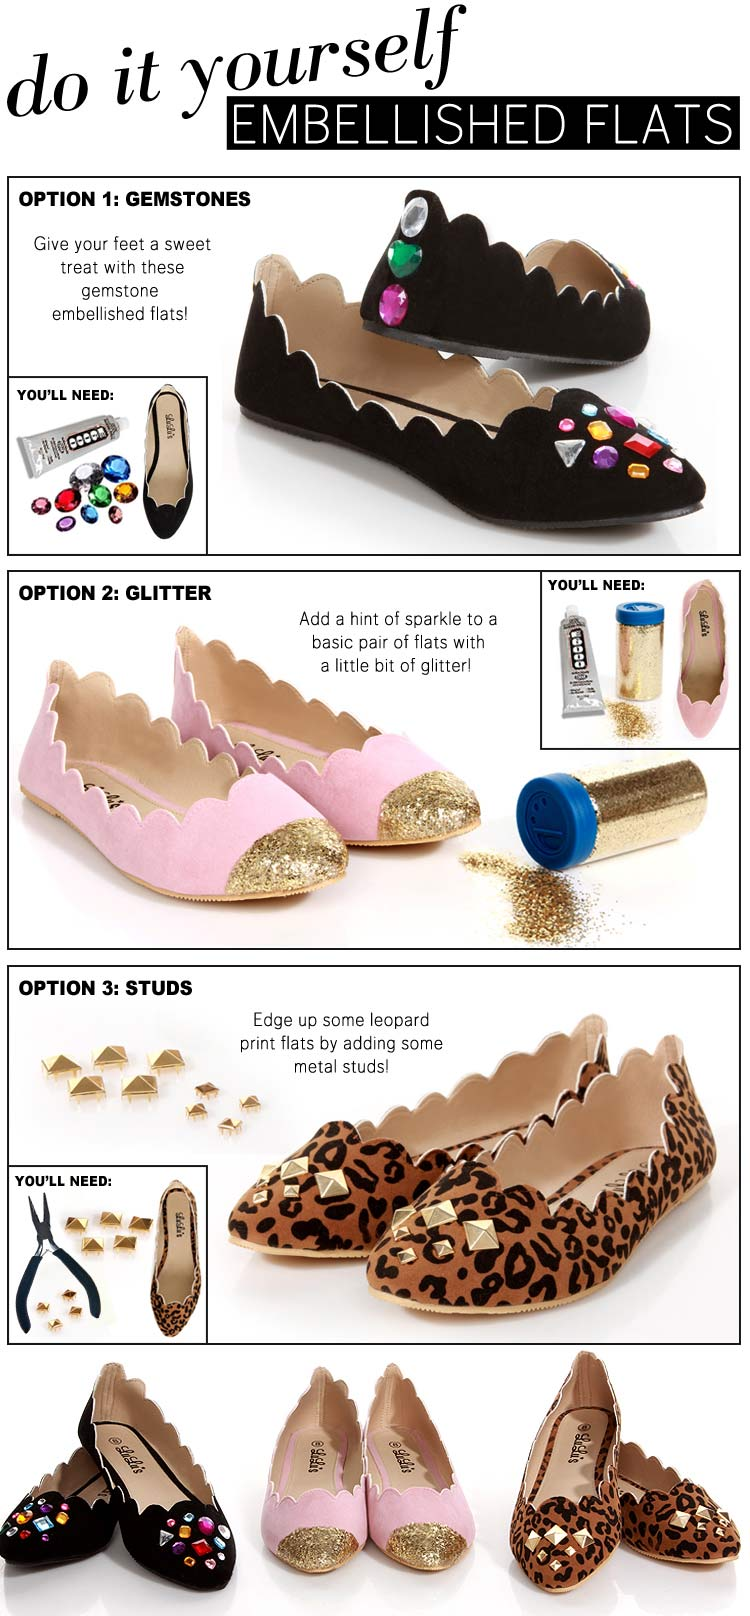 Flats with Glitter